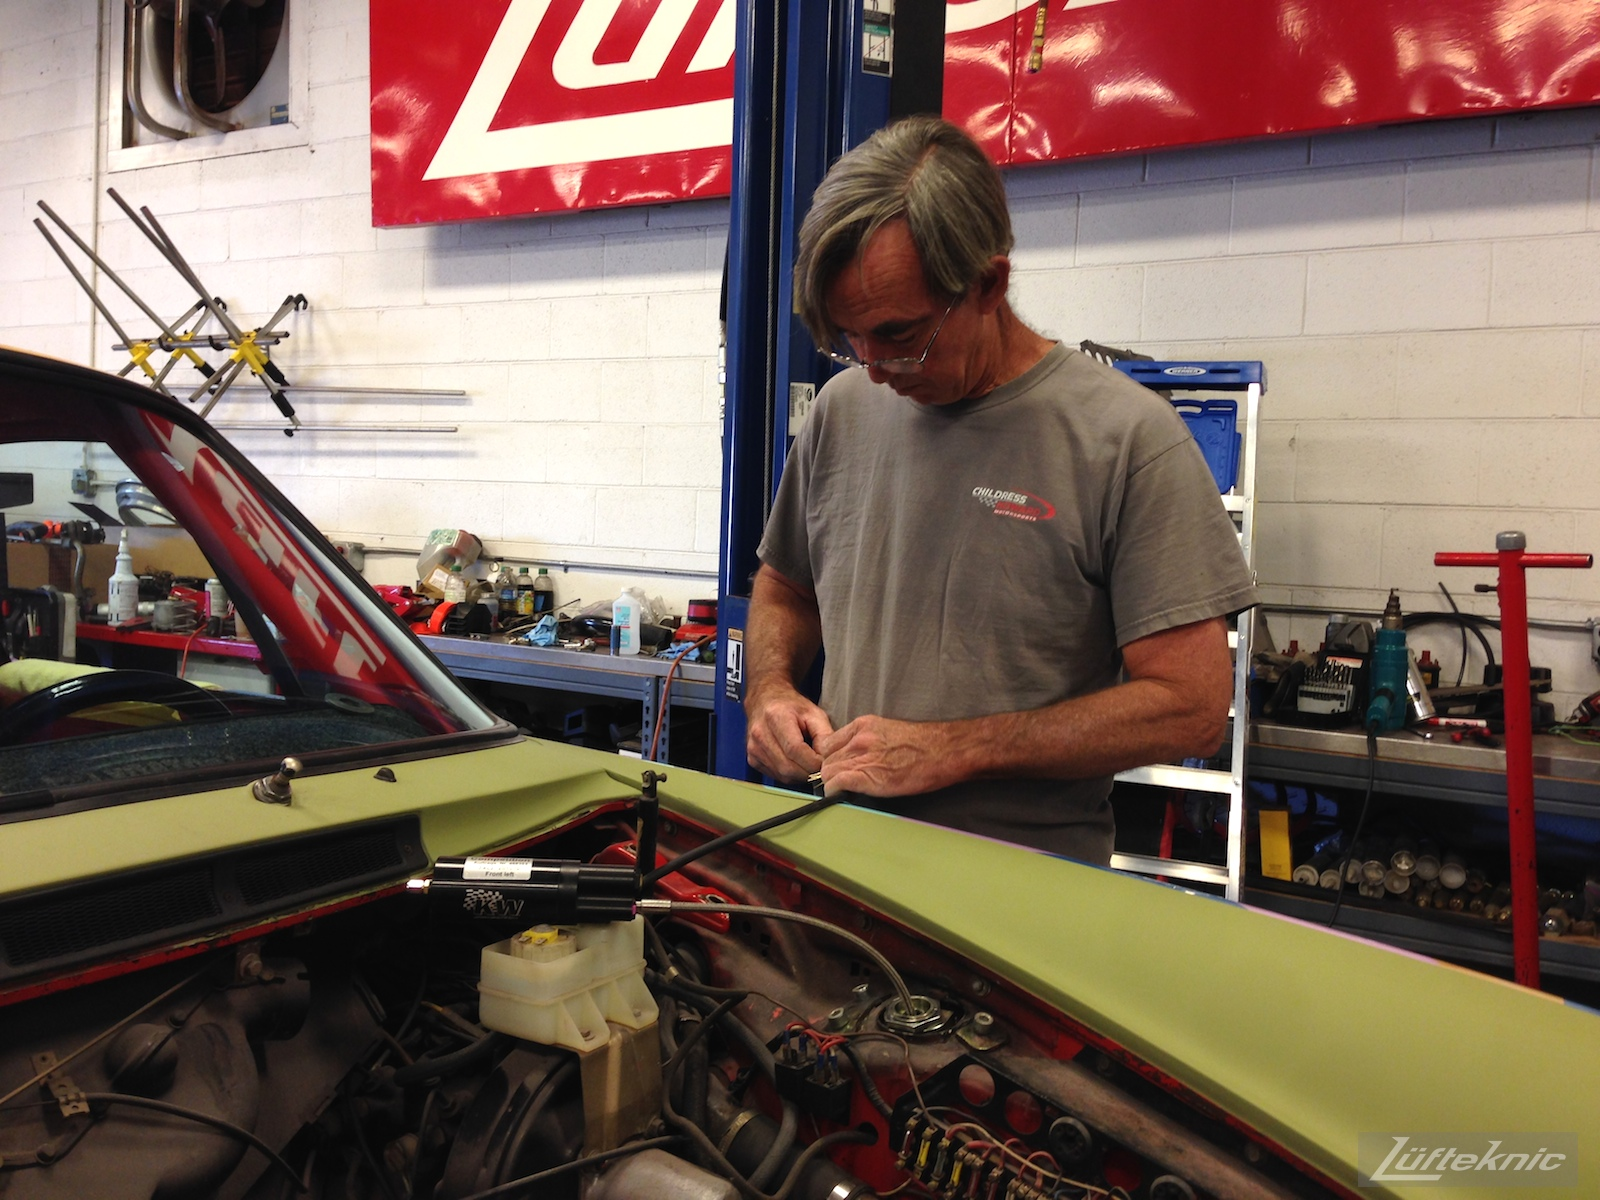 Marshall Smith completes wiring on the Lüfteknic #projectstuka Porsche 930 Turbo